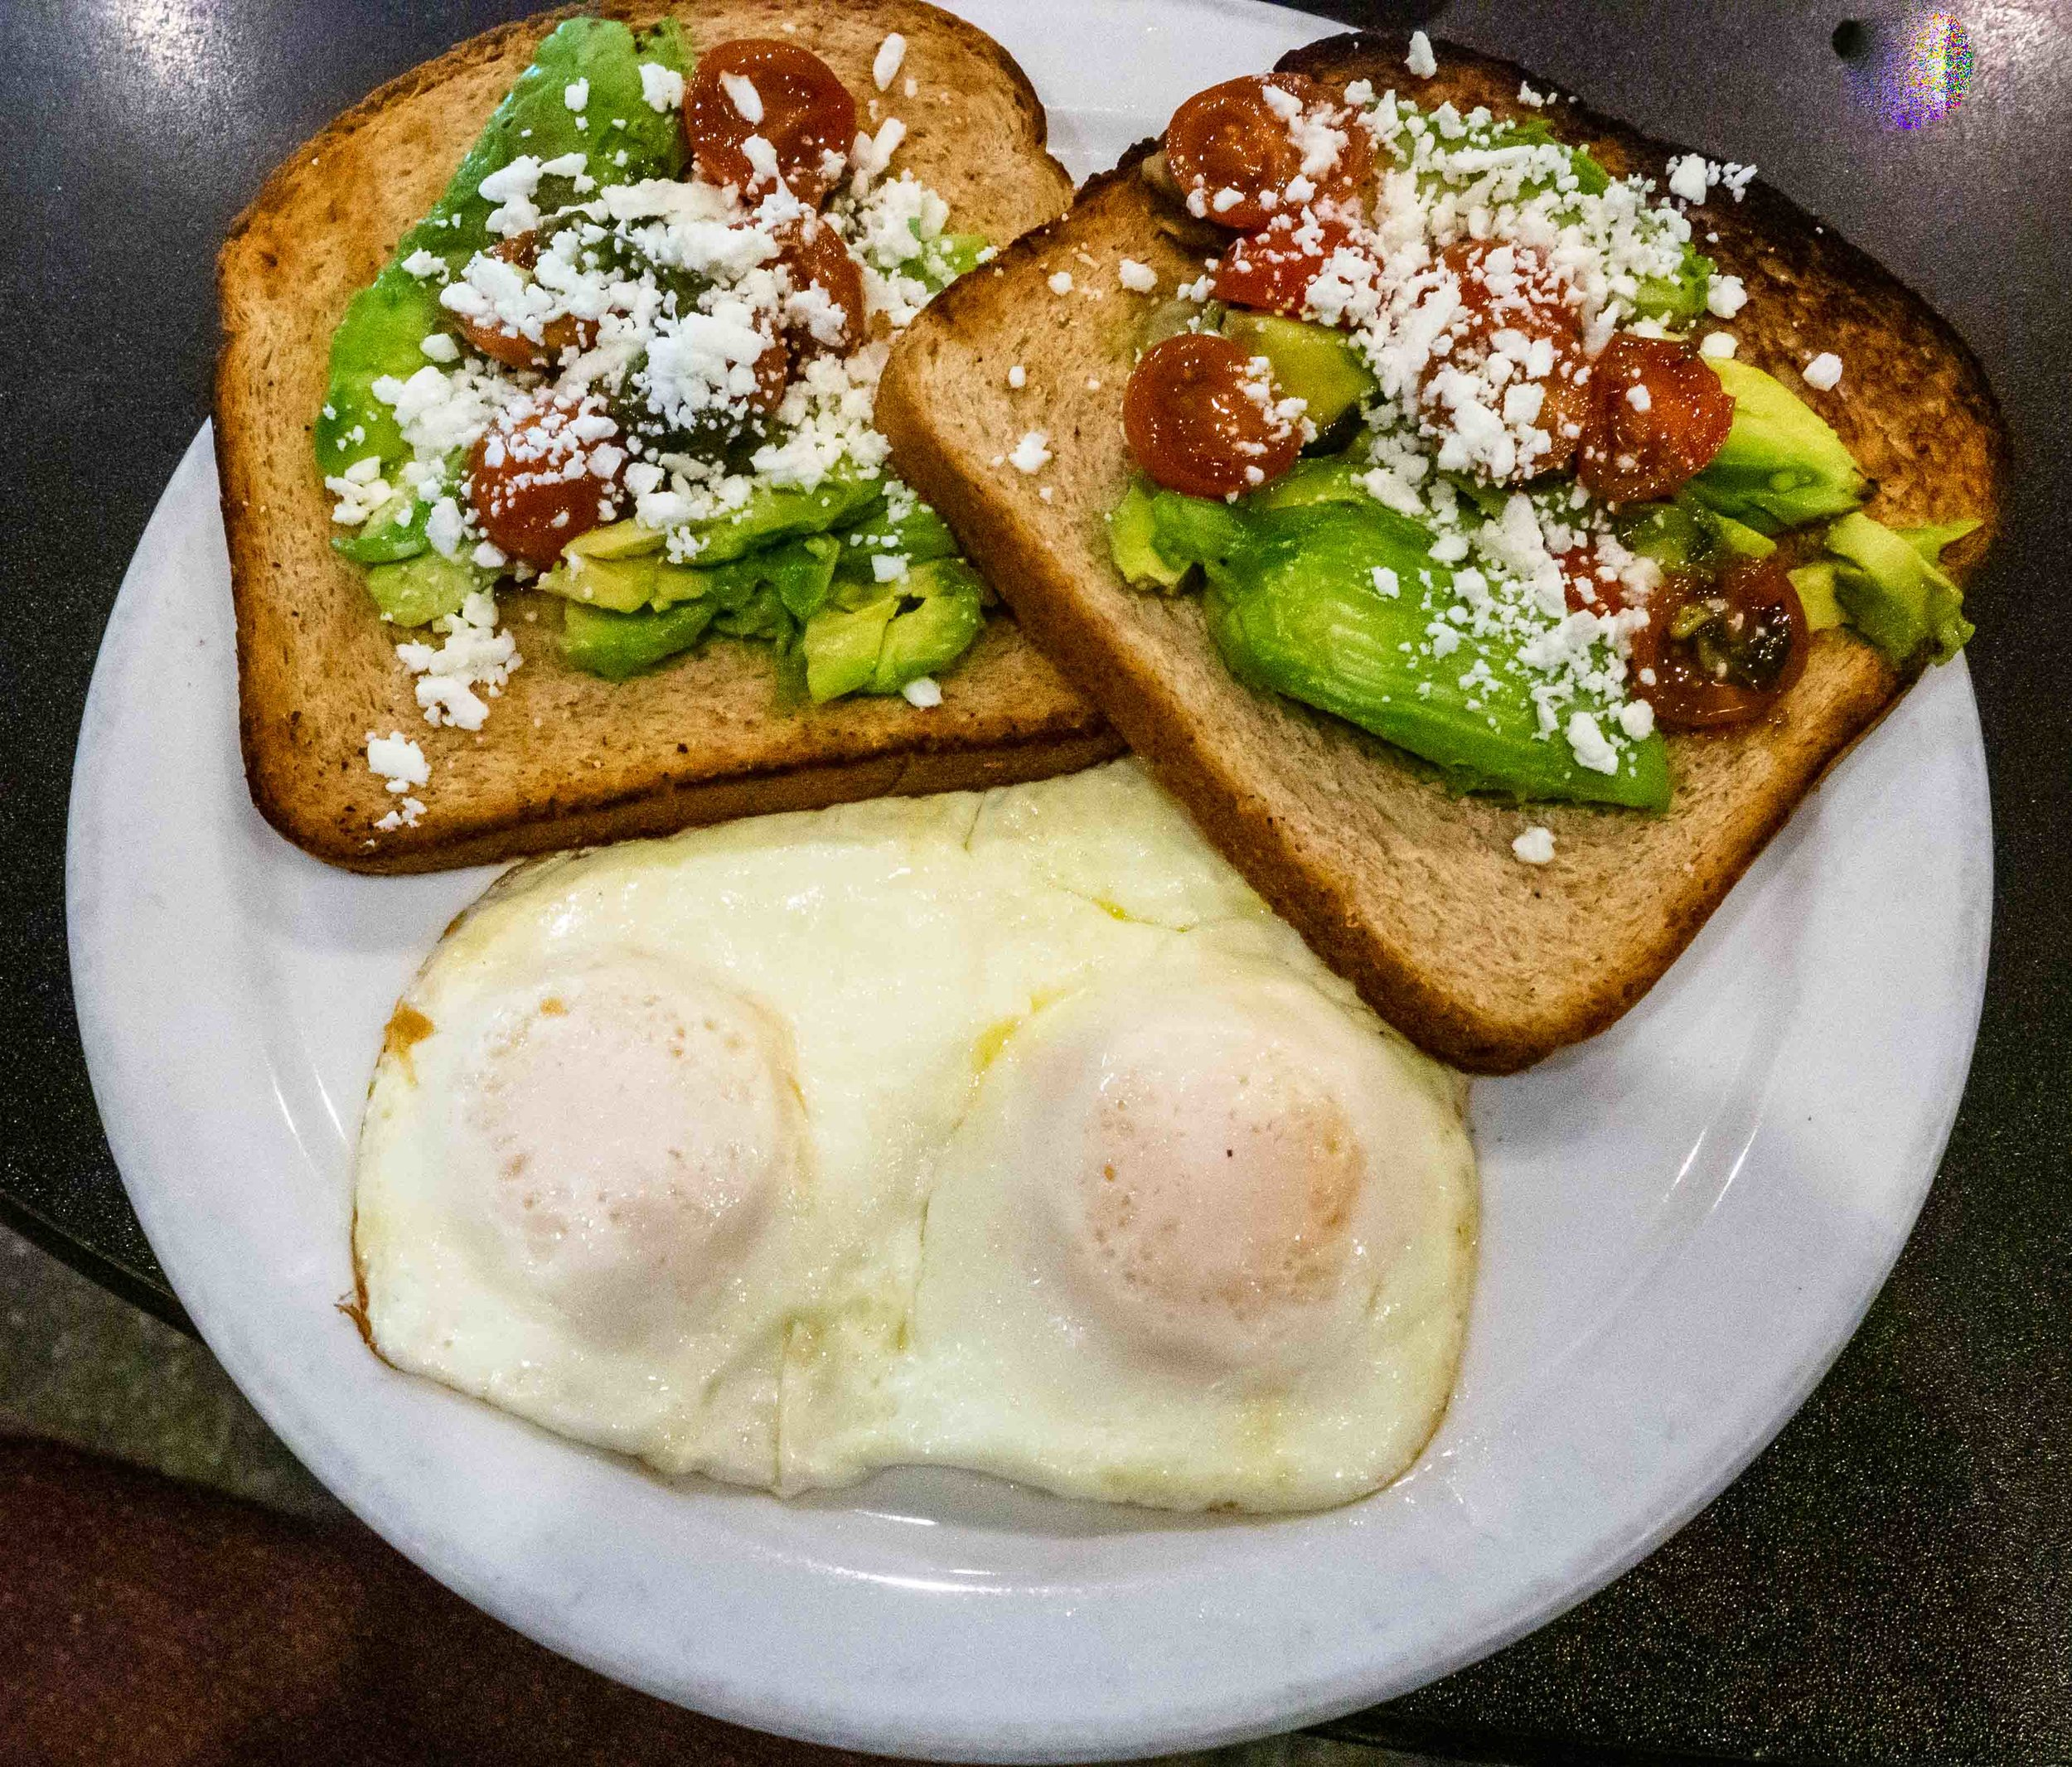 Avocado toast with eggs over easy